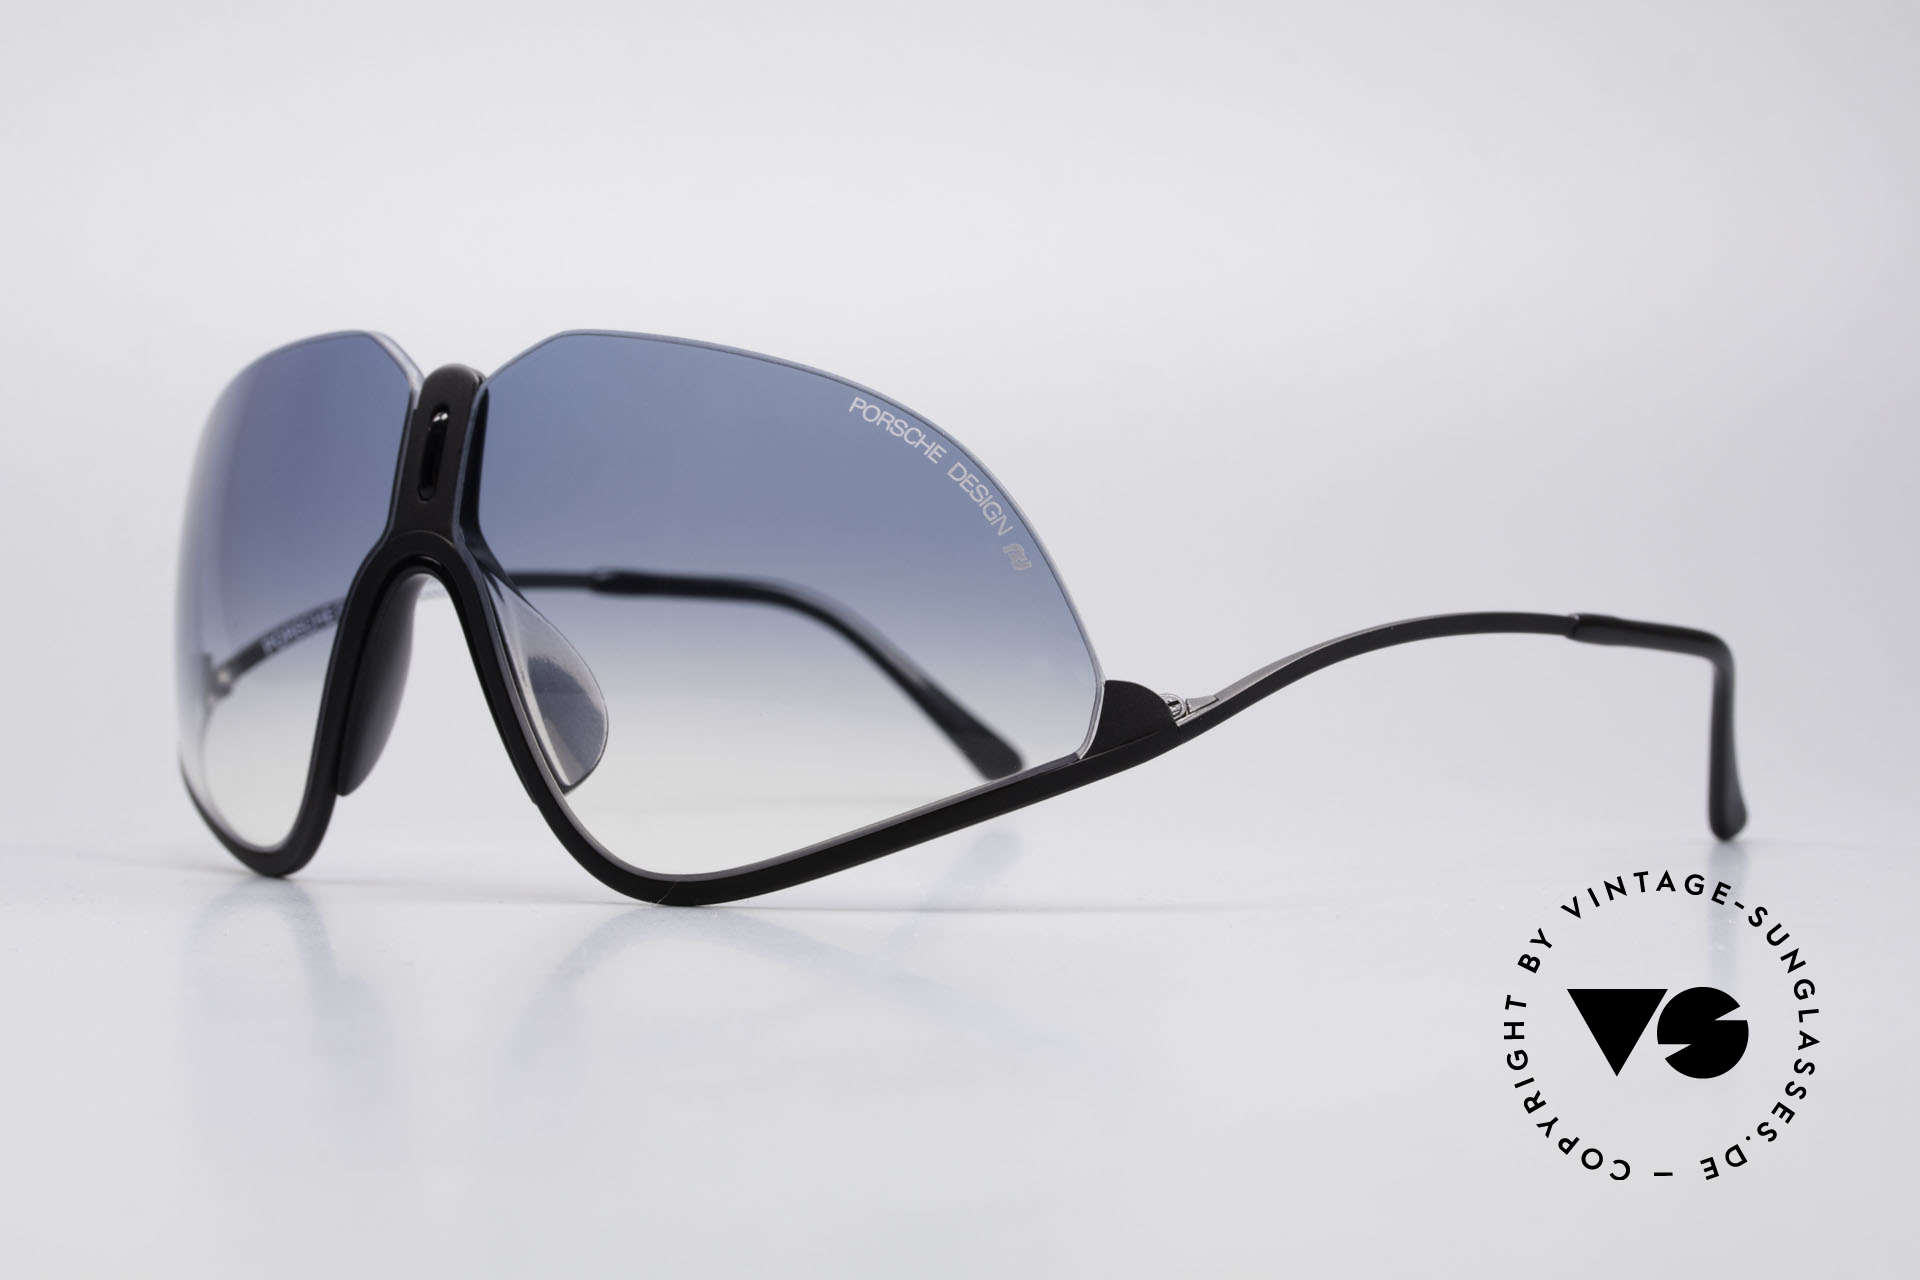 Porsche 5630 90's Designer Sports Shades, upper frame edge without boundary (see the skyline), Made for Men